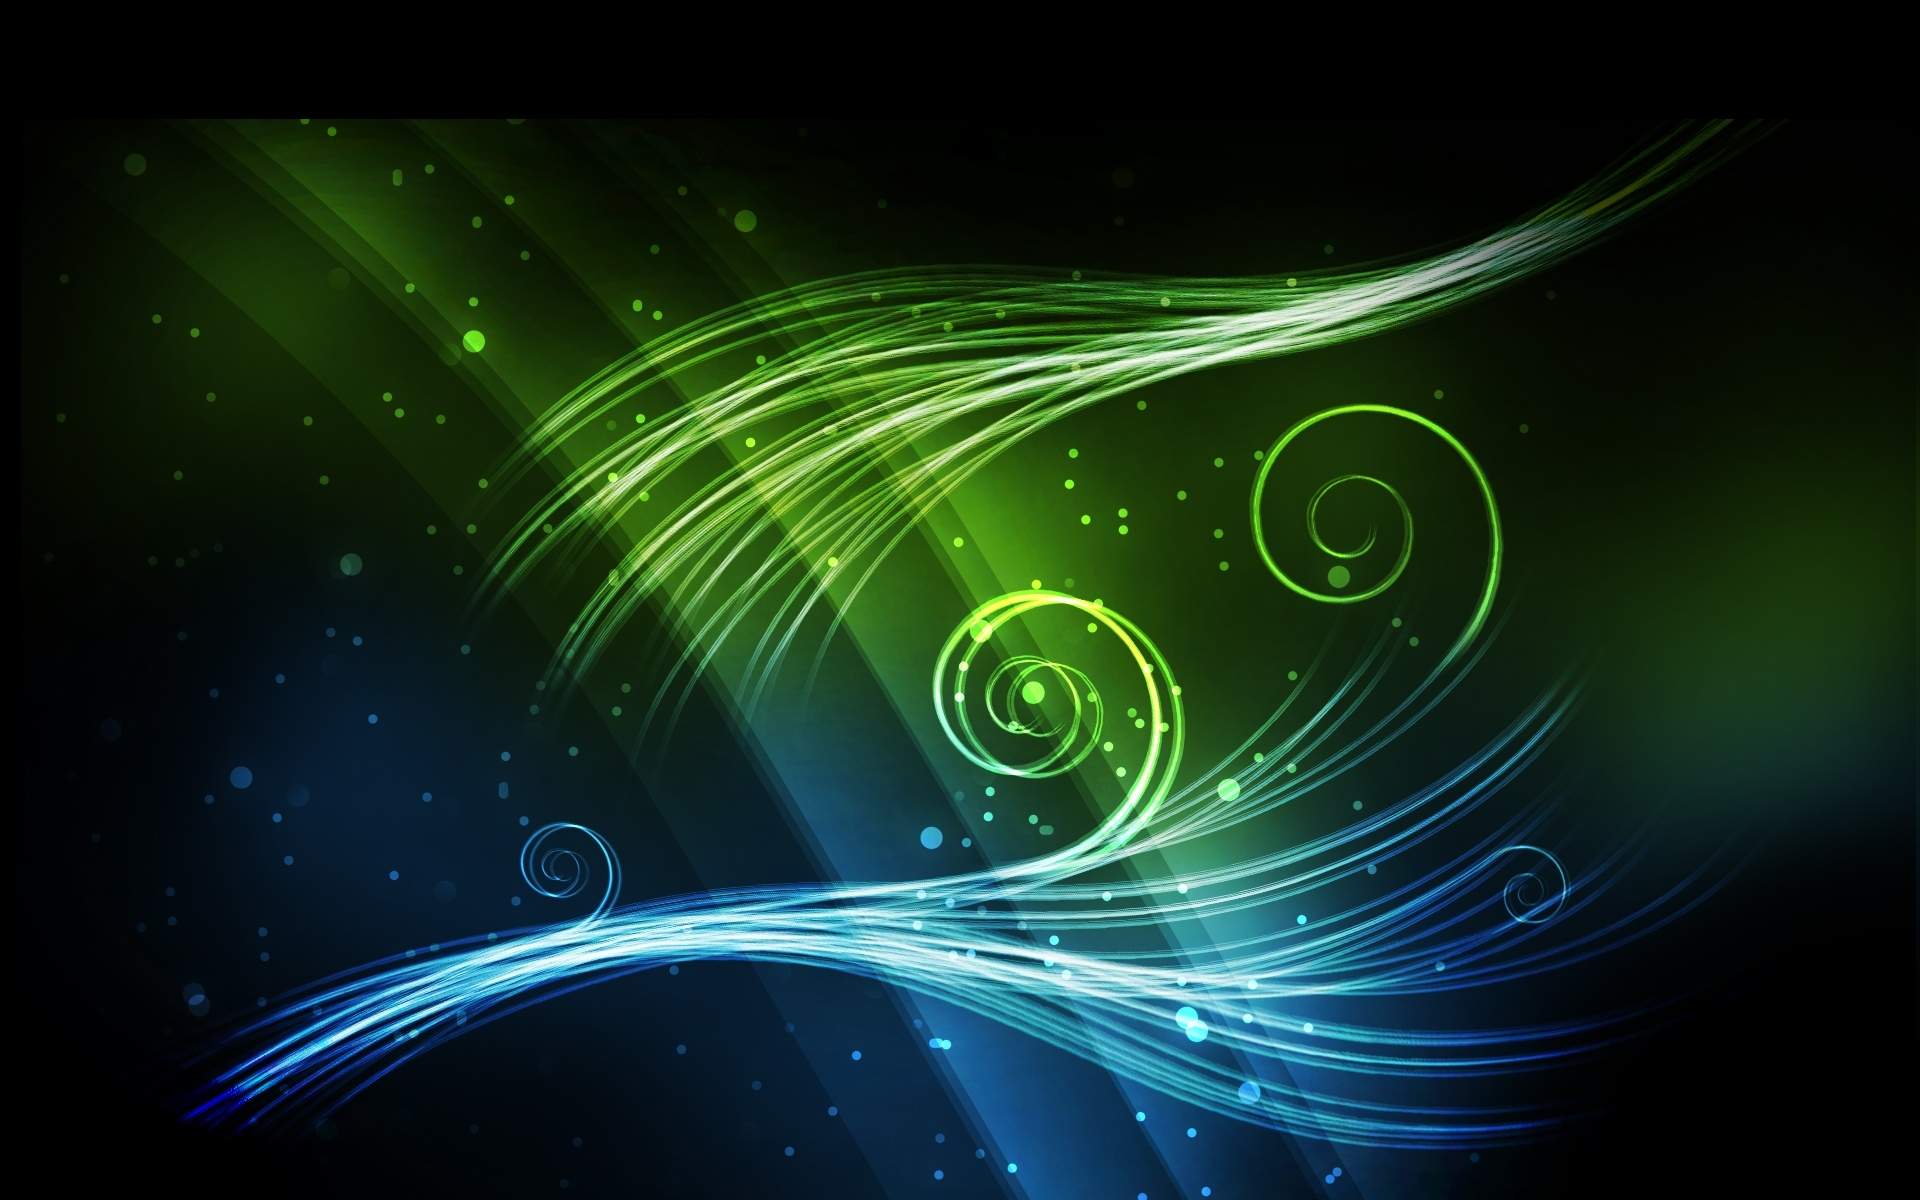 Blue Green Abstract Background Blue Green Shiny Abstract